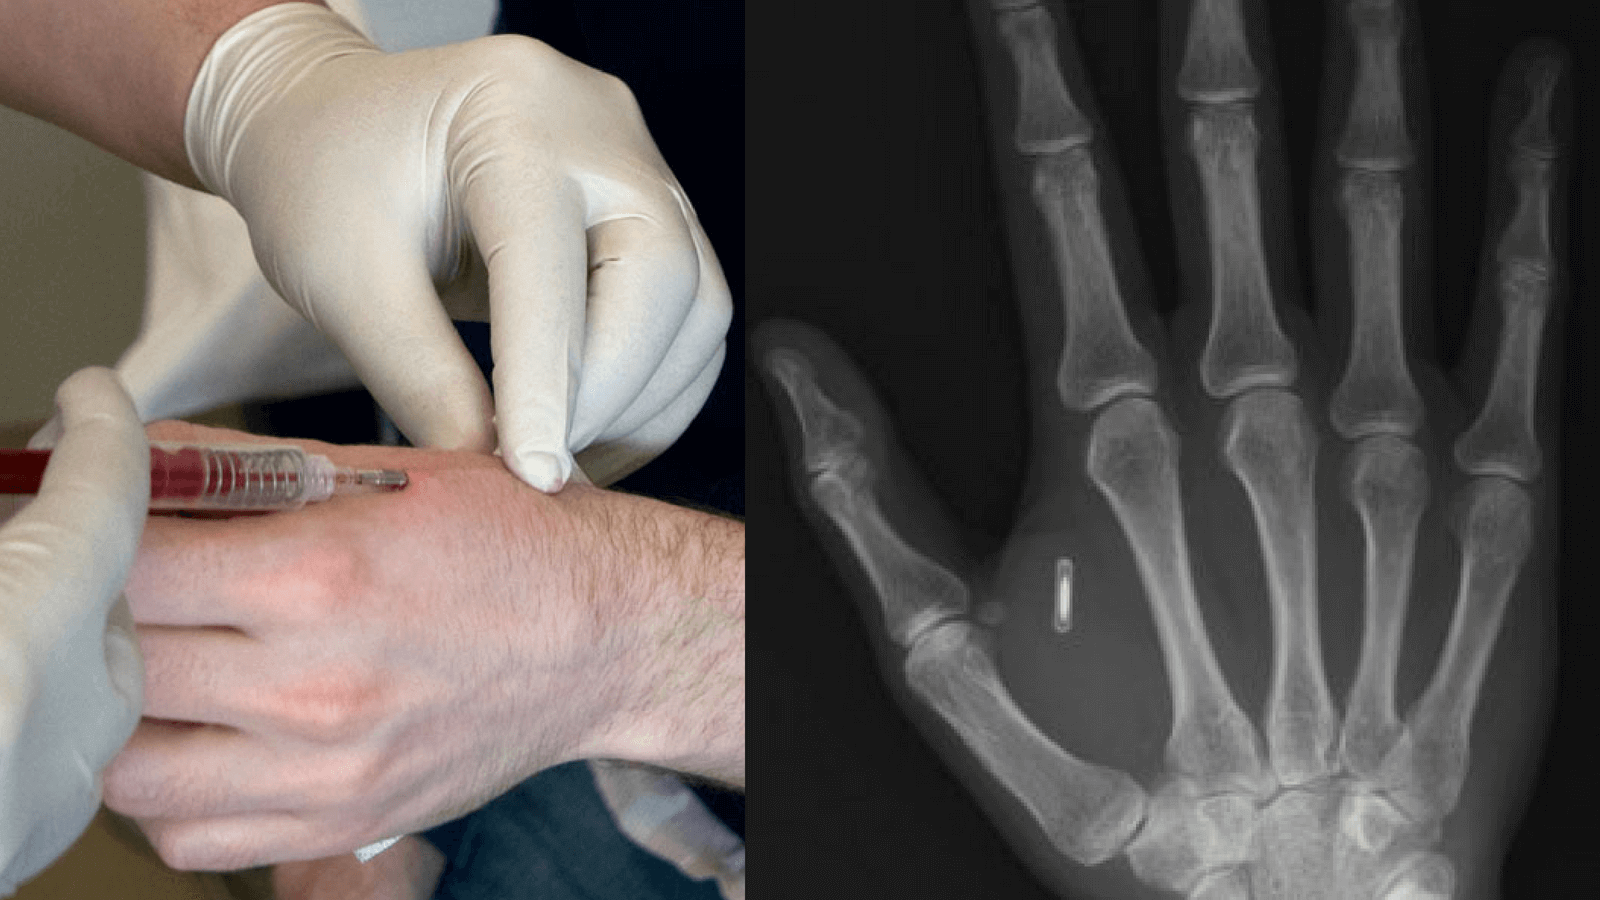 How Do You Know If Your Body Has An RFID Chip?